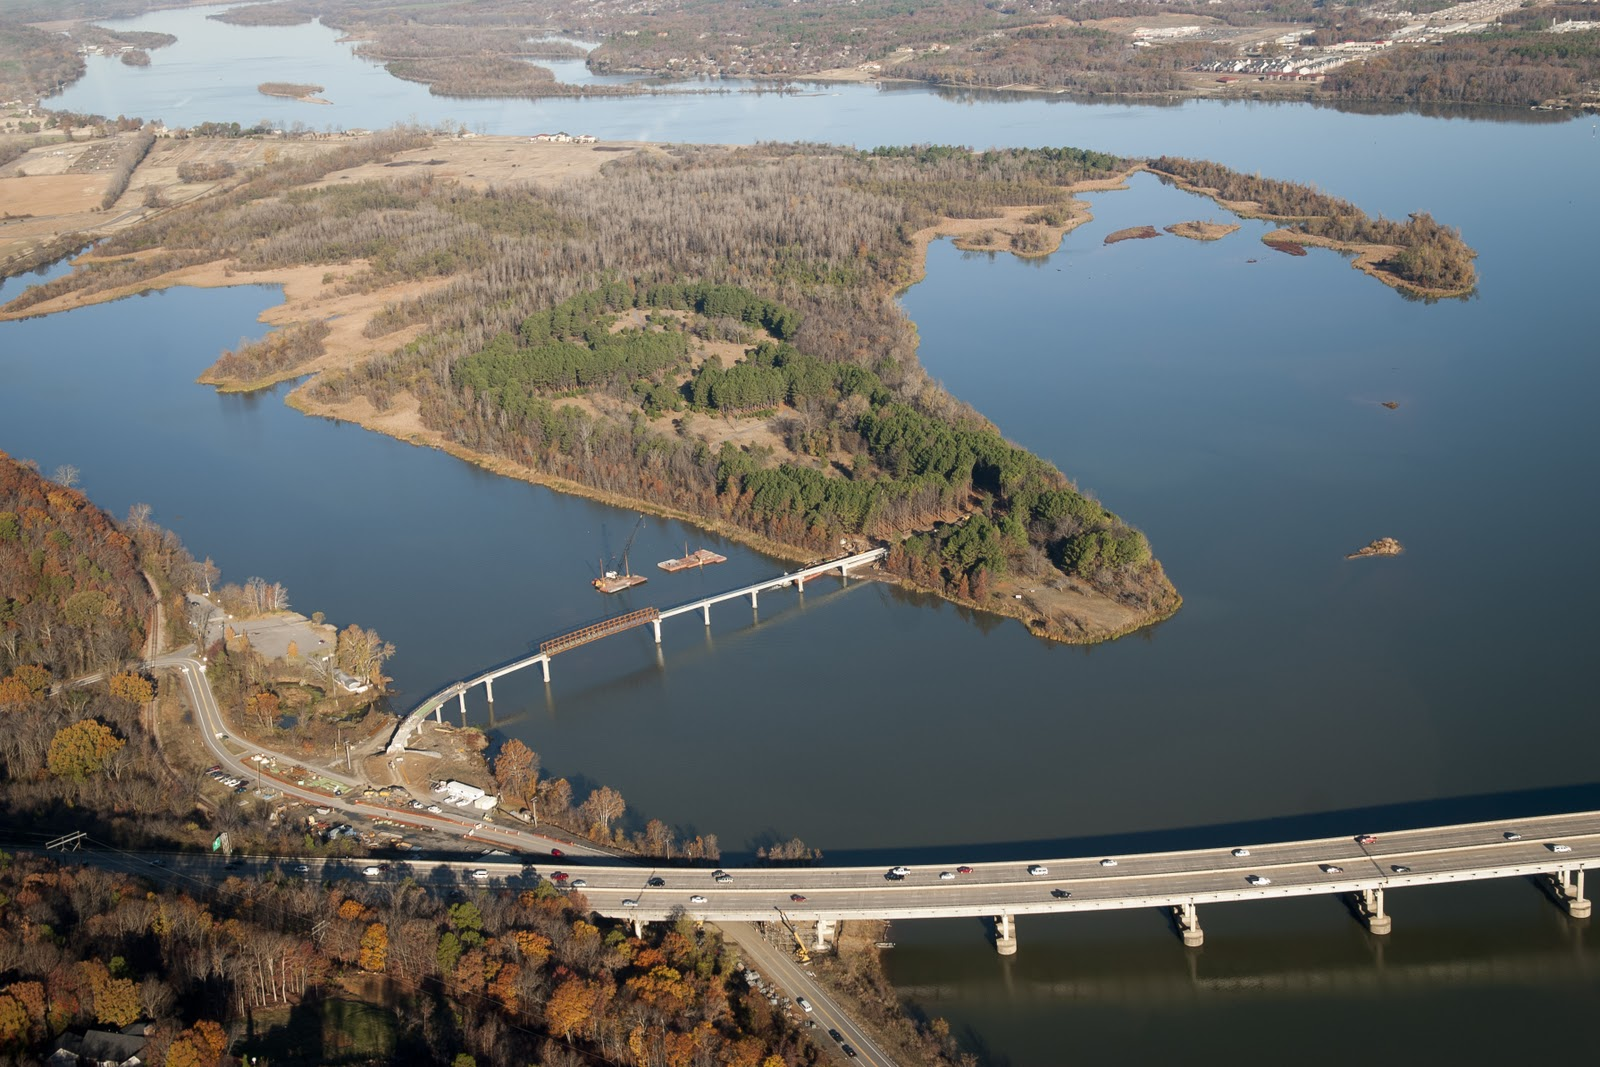 Little+Maumelle+River+Pedestrian+Bridge+2010+Aerial+3224-L-07051070.jpg